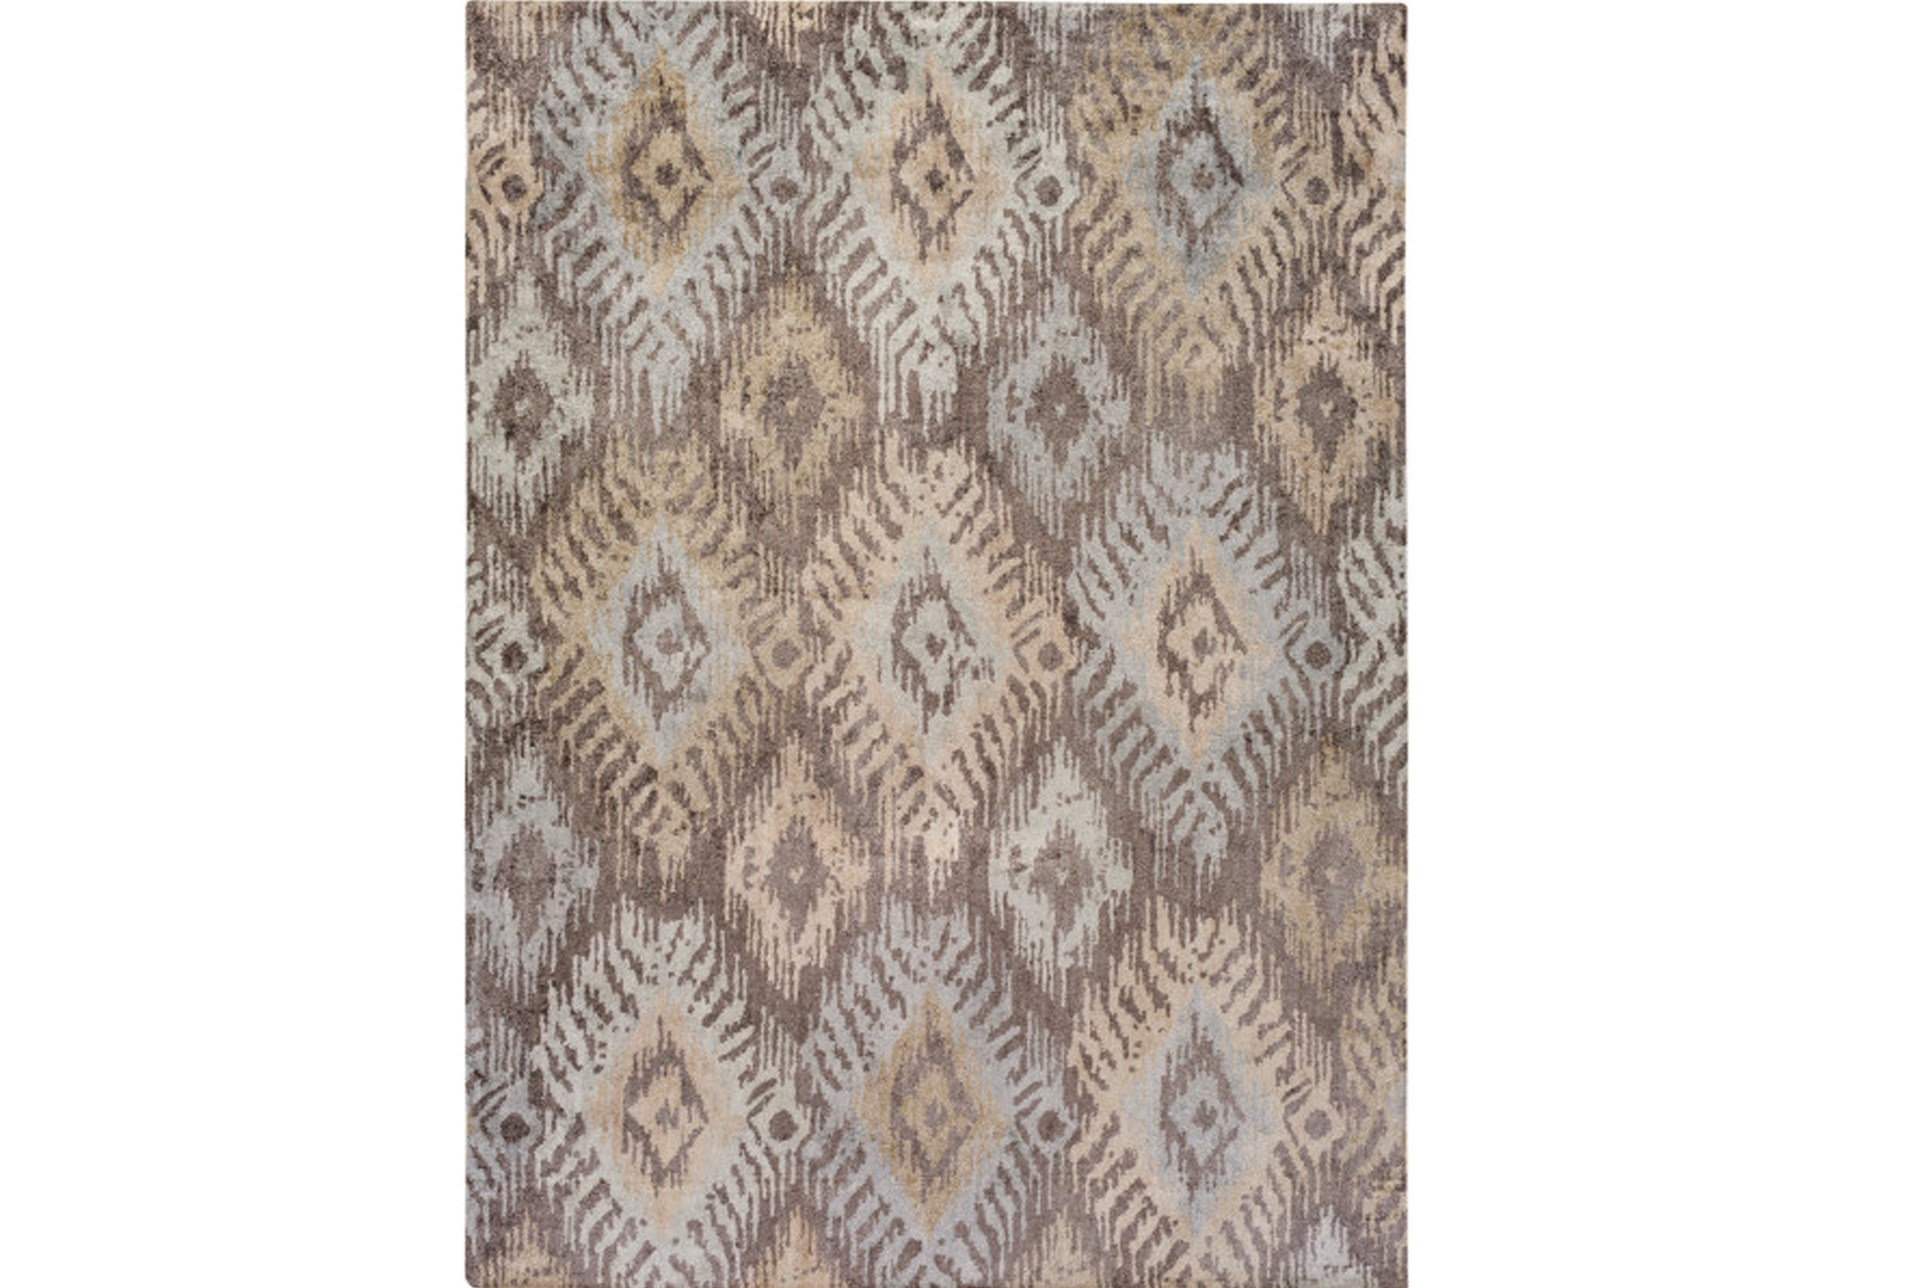 96x132 Rug Vista Grey Slate Qty 1 Has Been Successfully Added To Your Cart